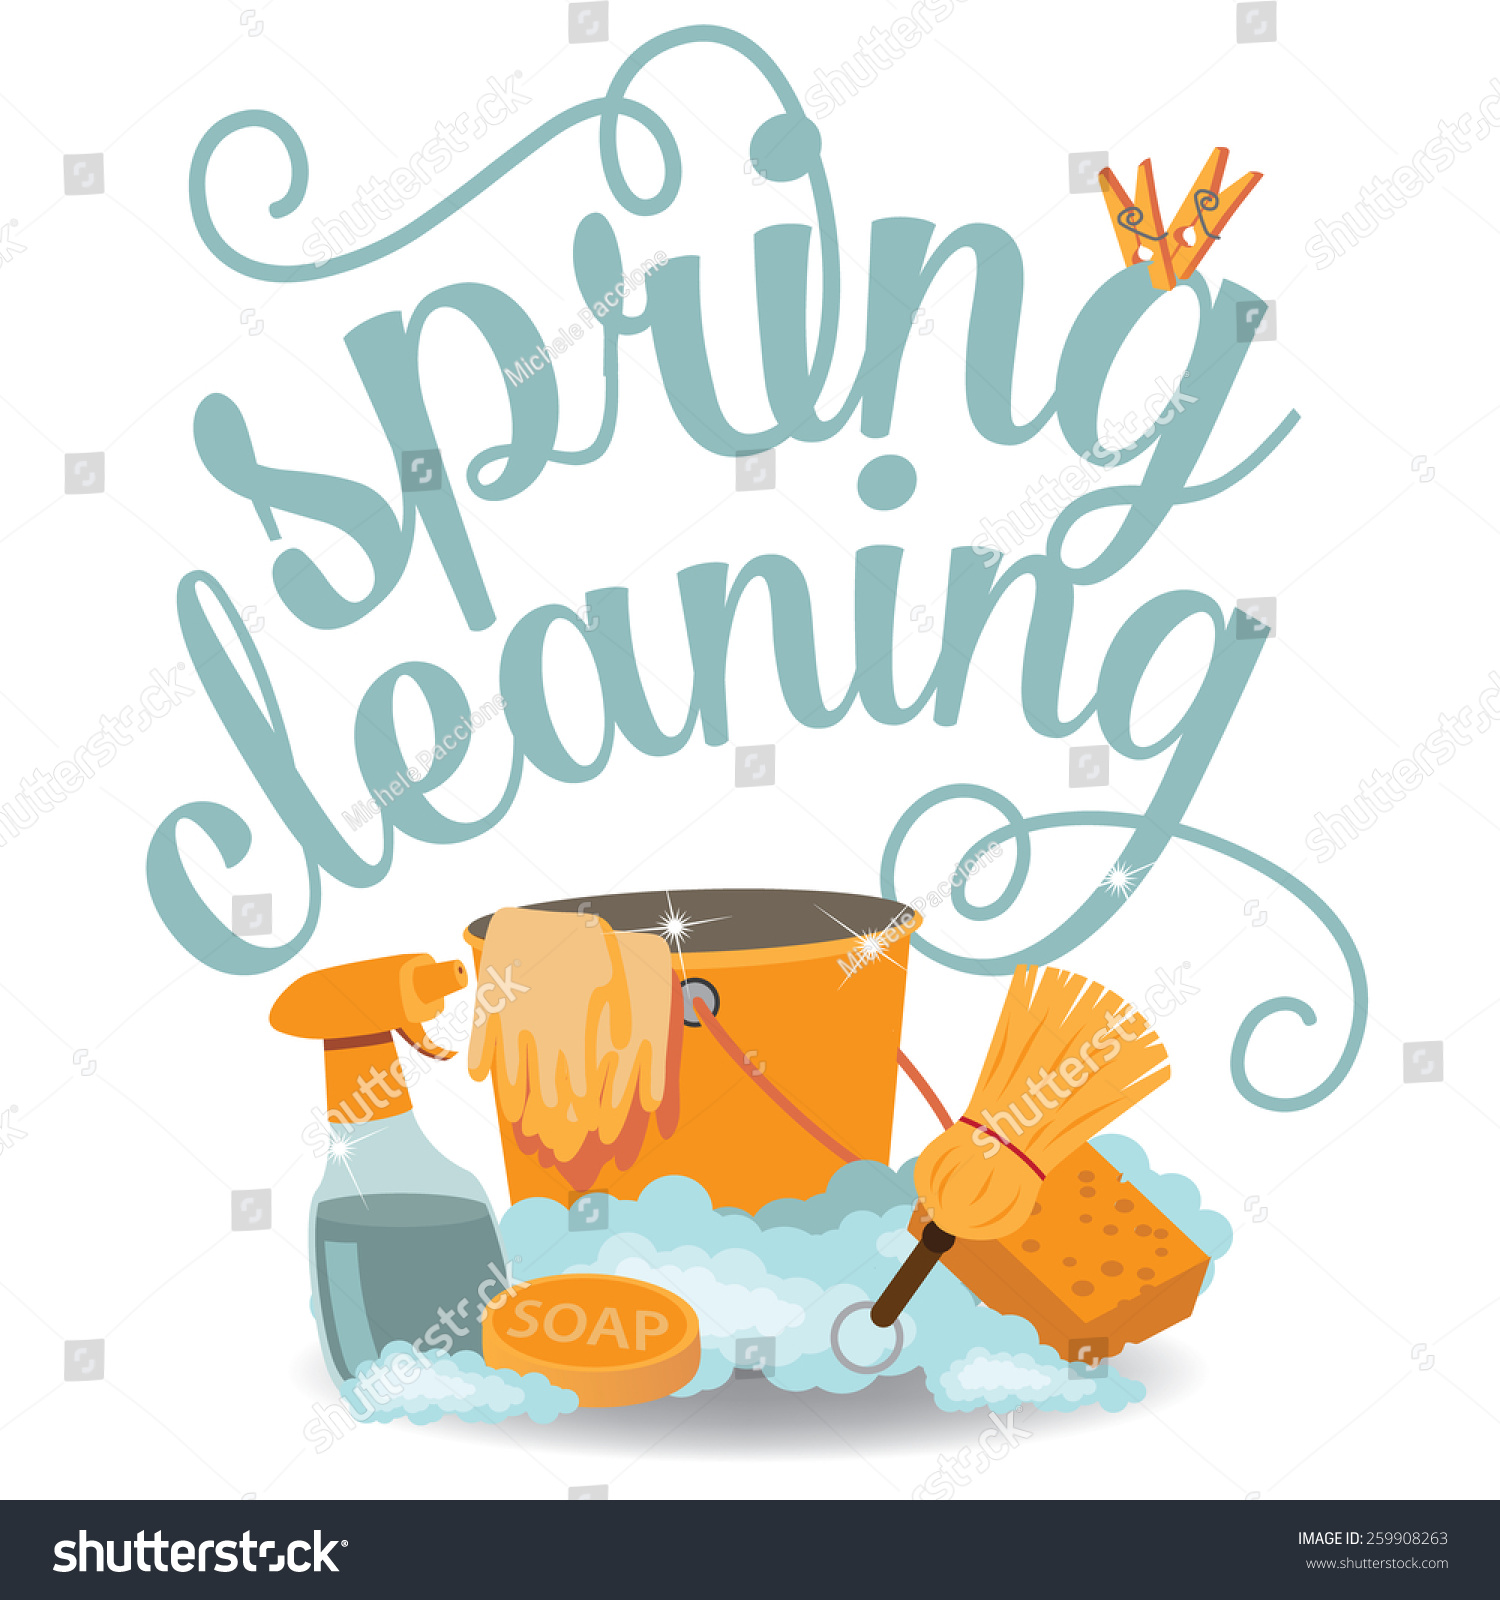 spring cleaning cheerful flat design eps stock vector  spring cleaning cheerful flat design eps 10 vector royalty stock illustration for greeting card